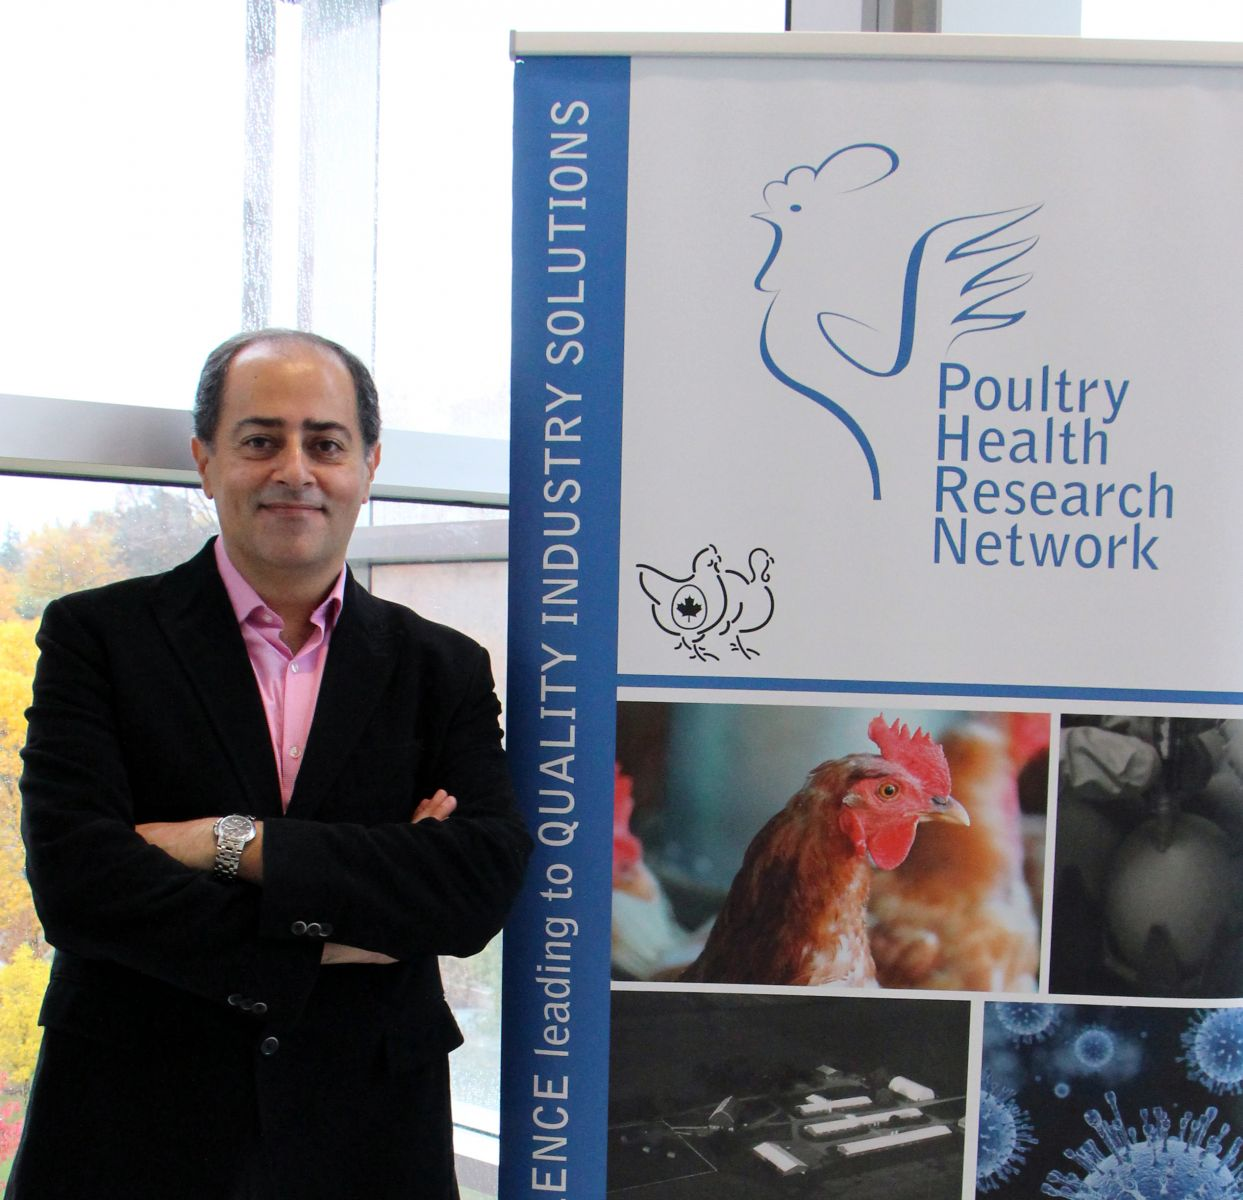 Dr. Shayan Sharif, Ontario Veterinary College, University of Guelph